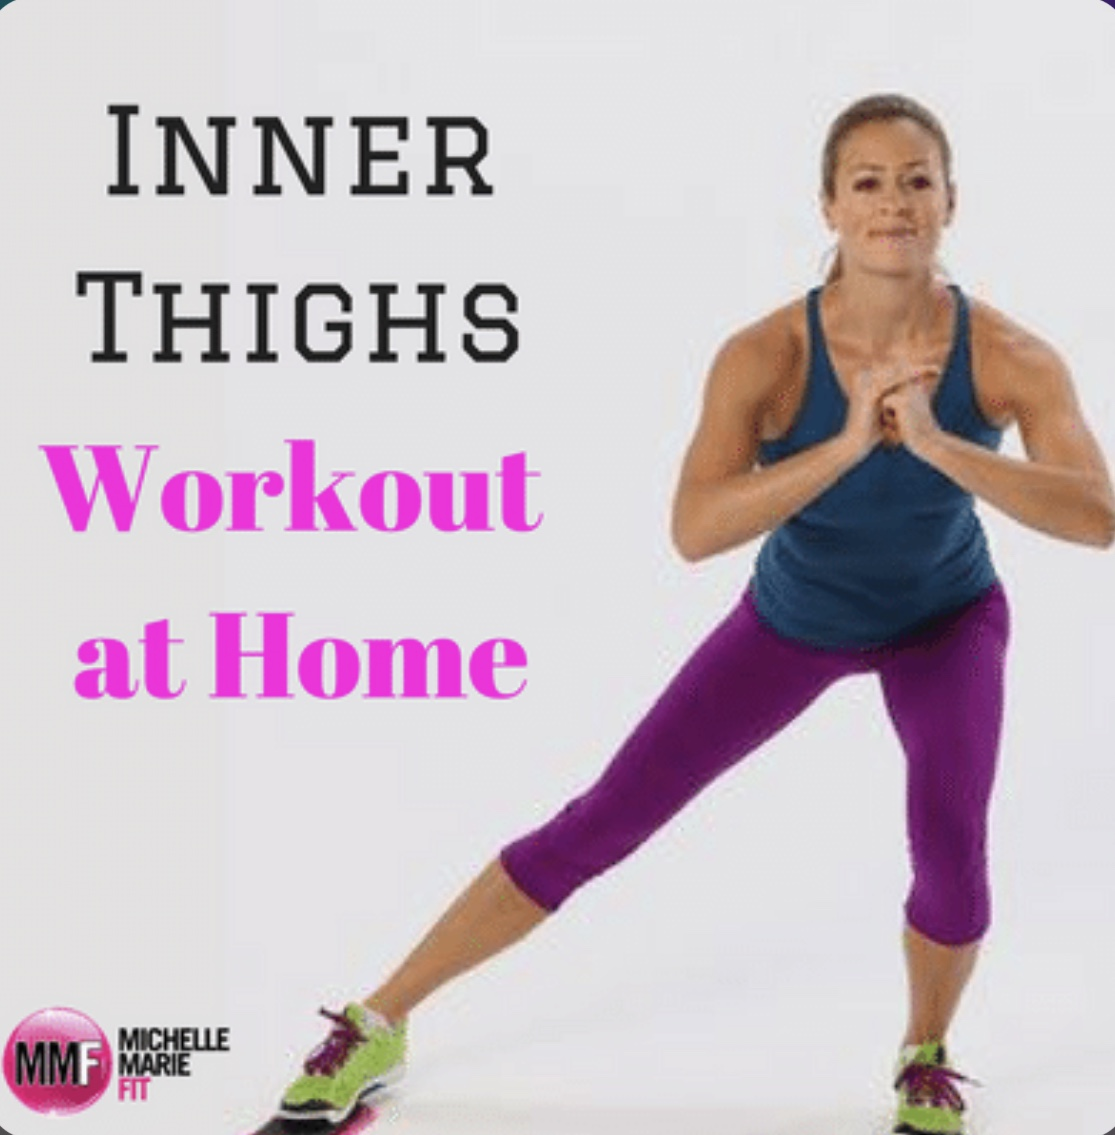 Inner Thighs Workout At Home - Michelle Marie Fit